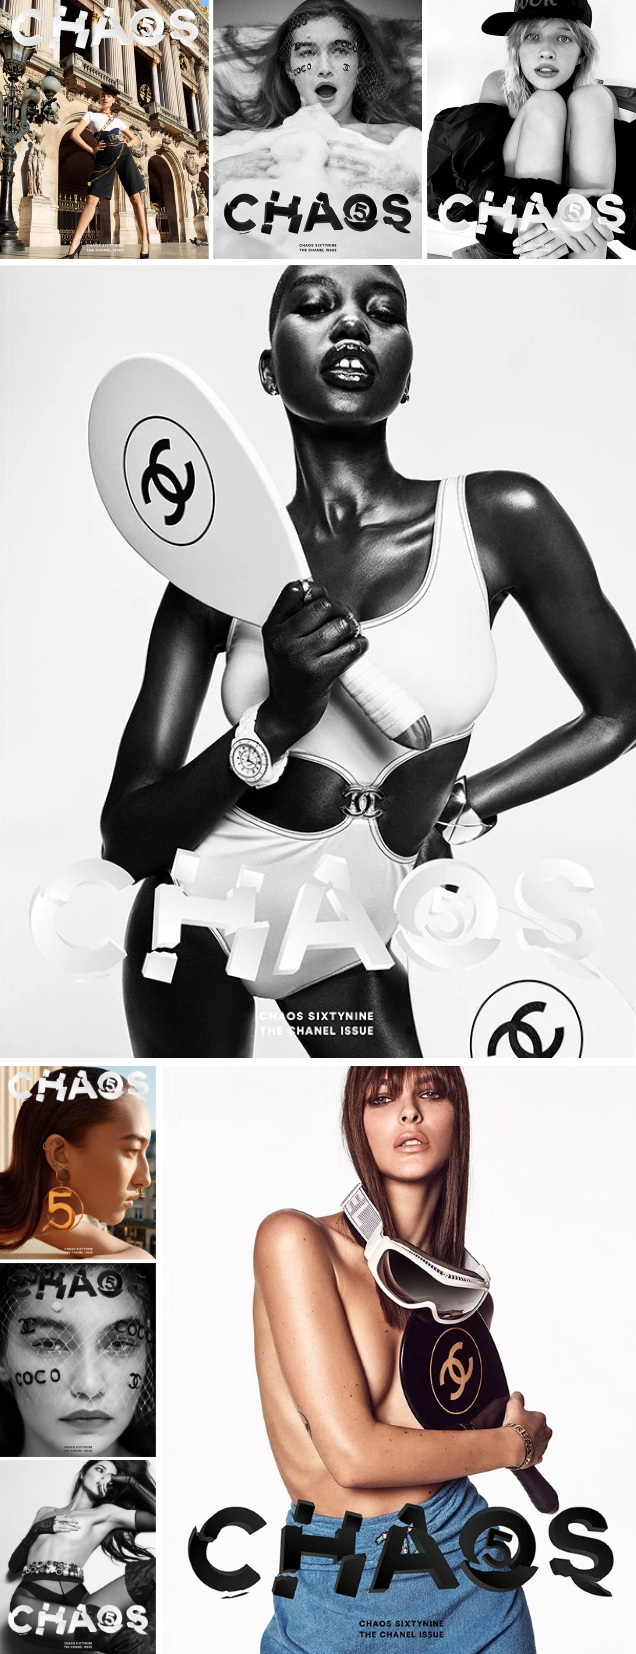 Chaos SixtyNine #5 2020 : 'The Chanel Issue'